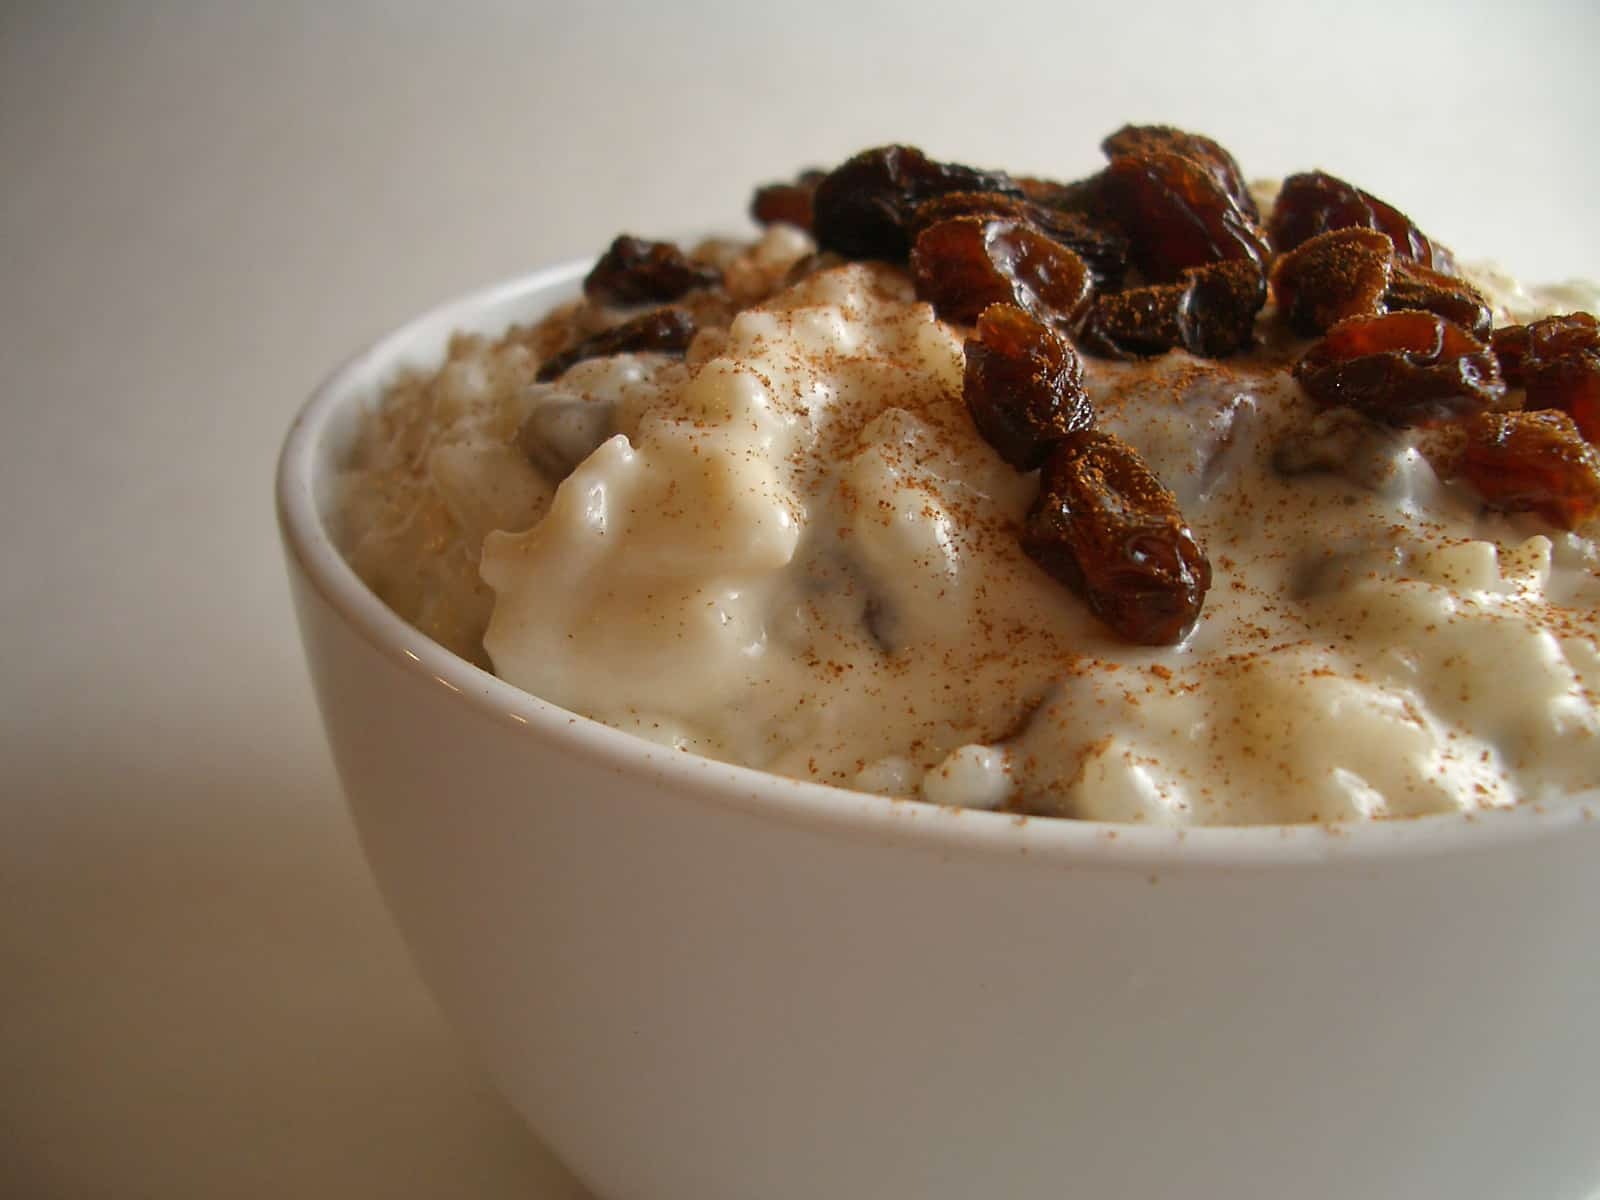 Baked rum raisin rice pudding